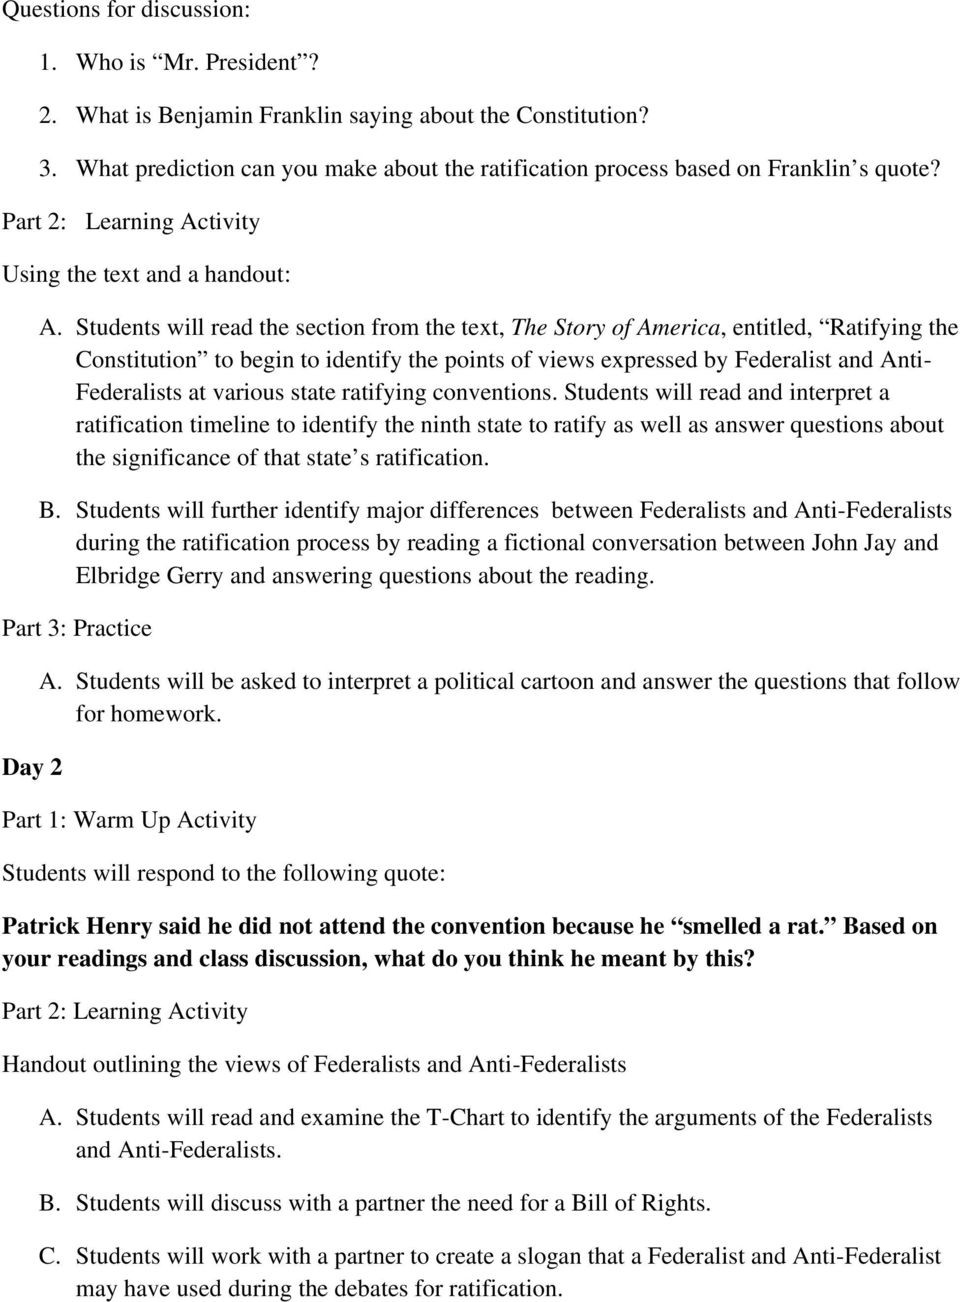 Ratifying the Constitution Worksheet Answers to Ratify or Not to Ratify Federalists V Anti Federalists